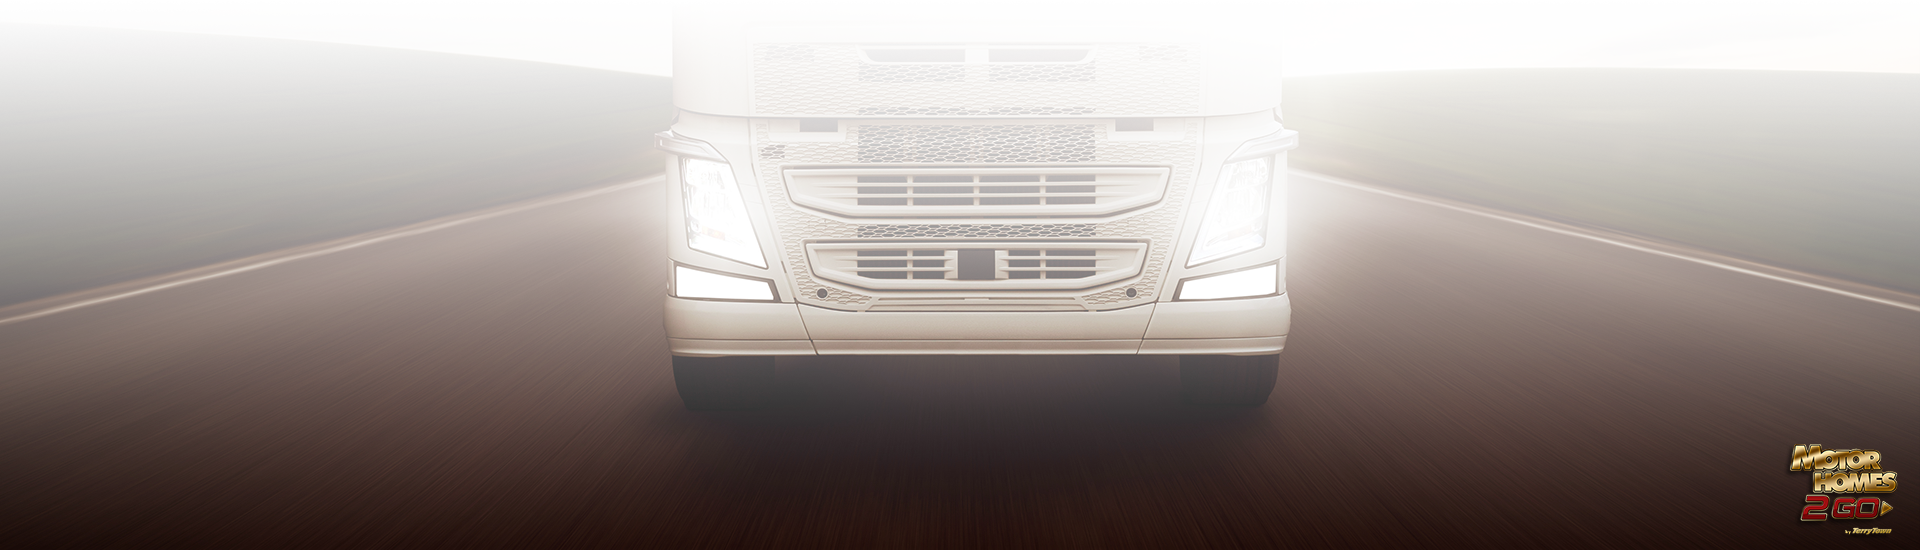 Common Issues With Motorhome Headlights And What To Do Mhs2go Rv Blog Monaco Dash Ac Wiring Diagram